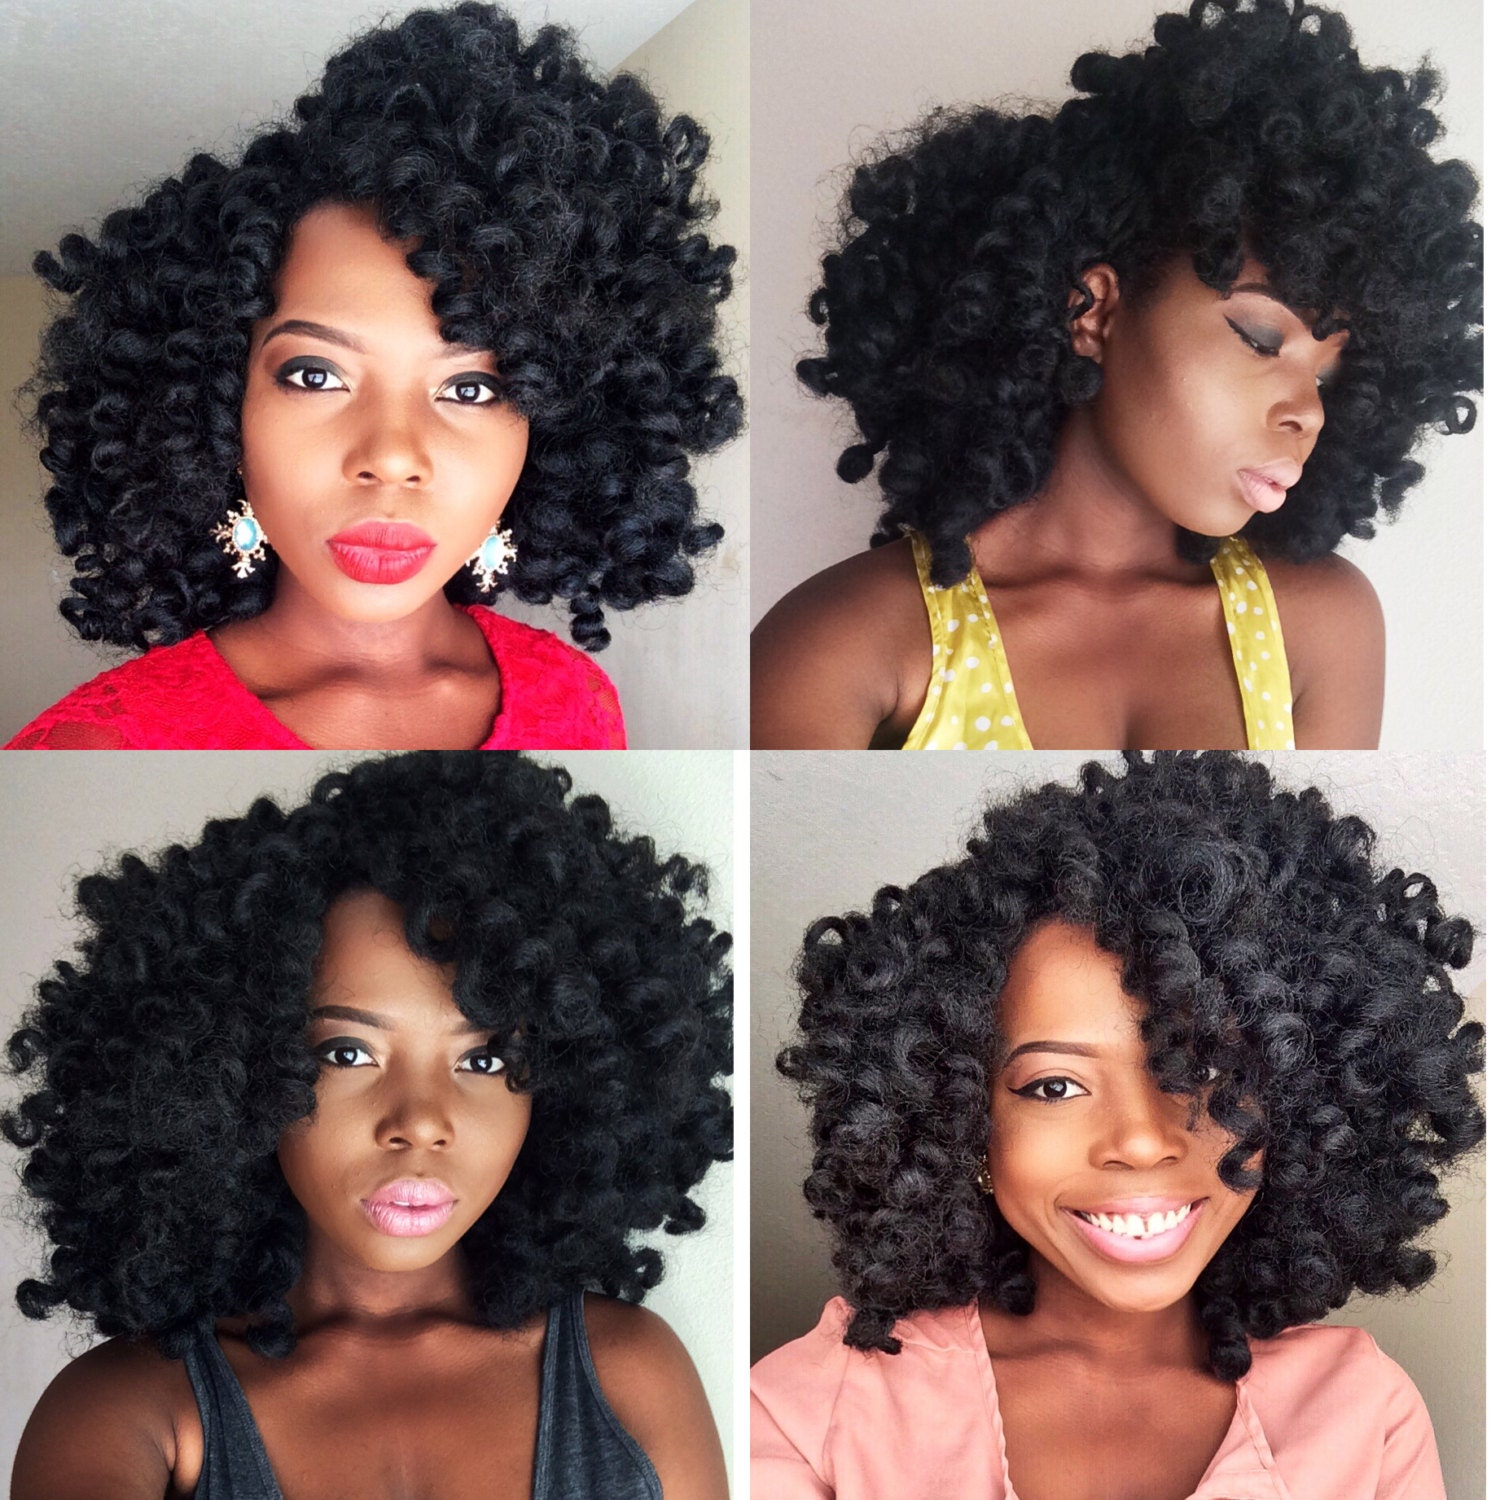 Crochet Braids Sale : Sale Priced Handmade Custom Curly Crochet Braid by Lolasterhair